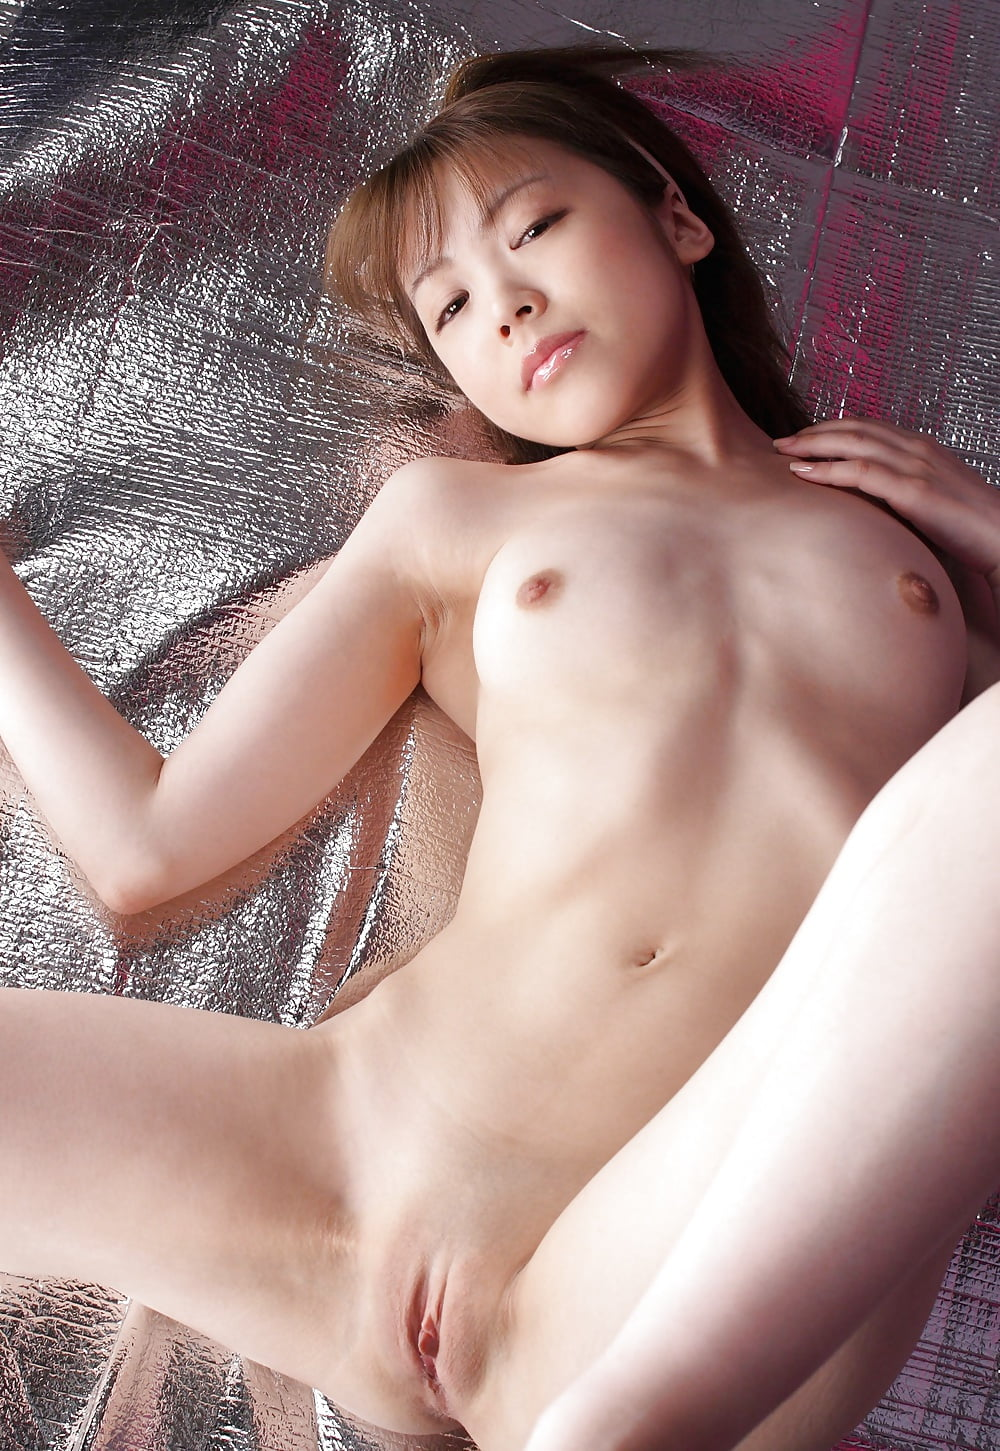 Young Asian Nudist Women With Small Tits